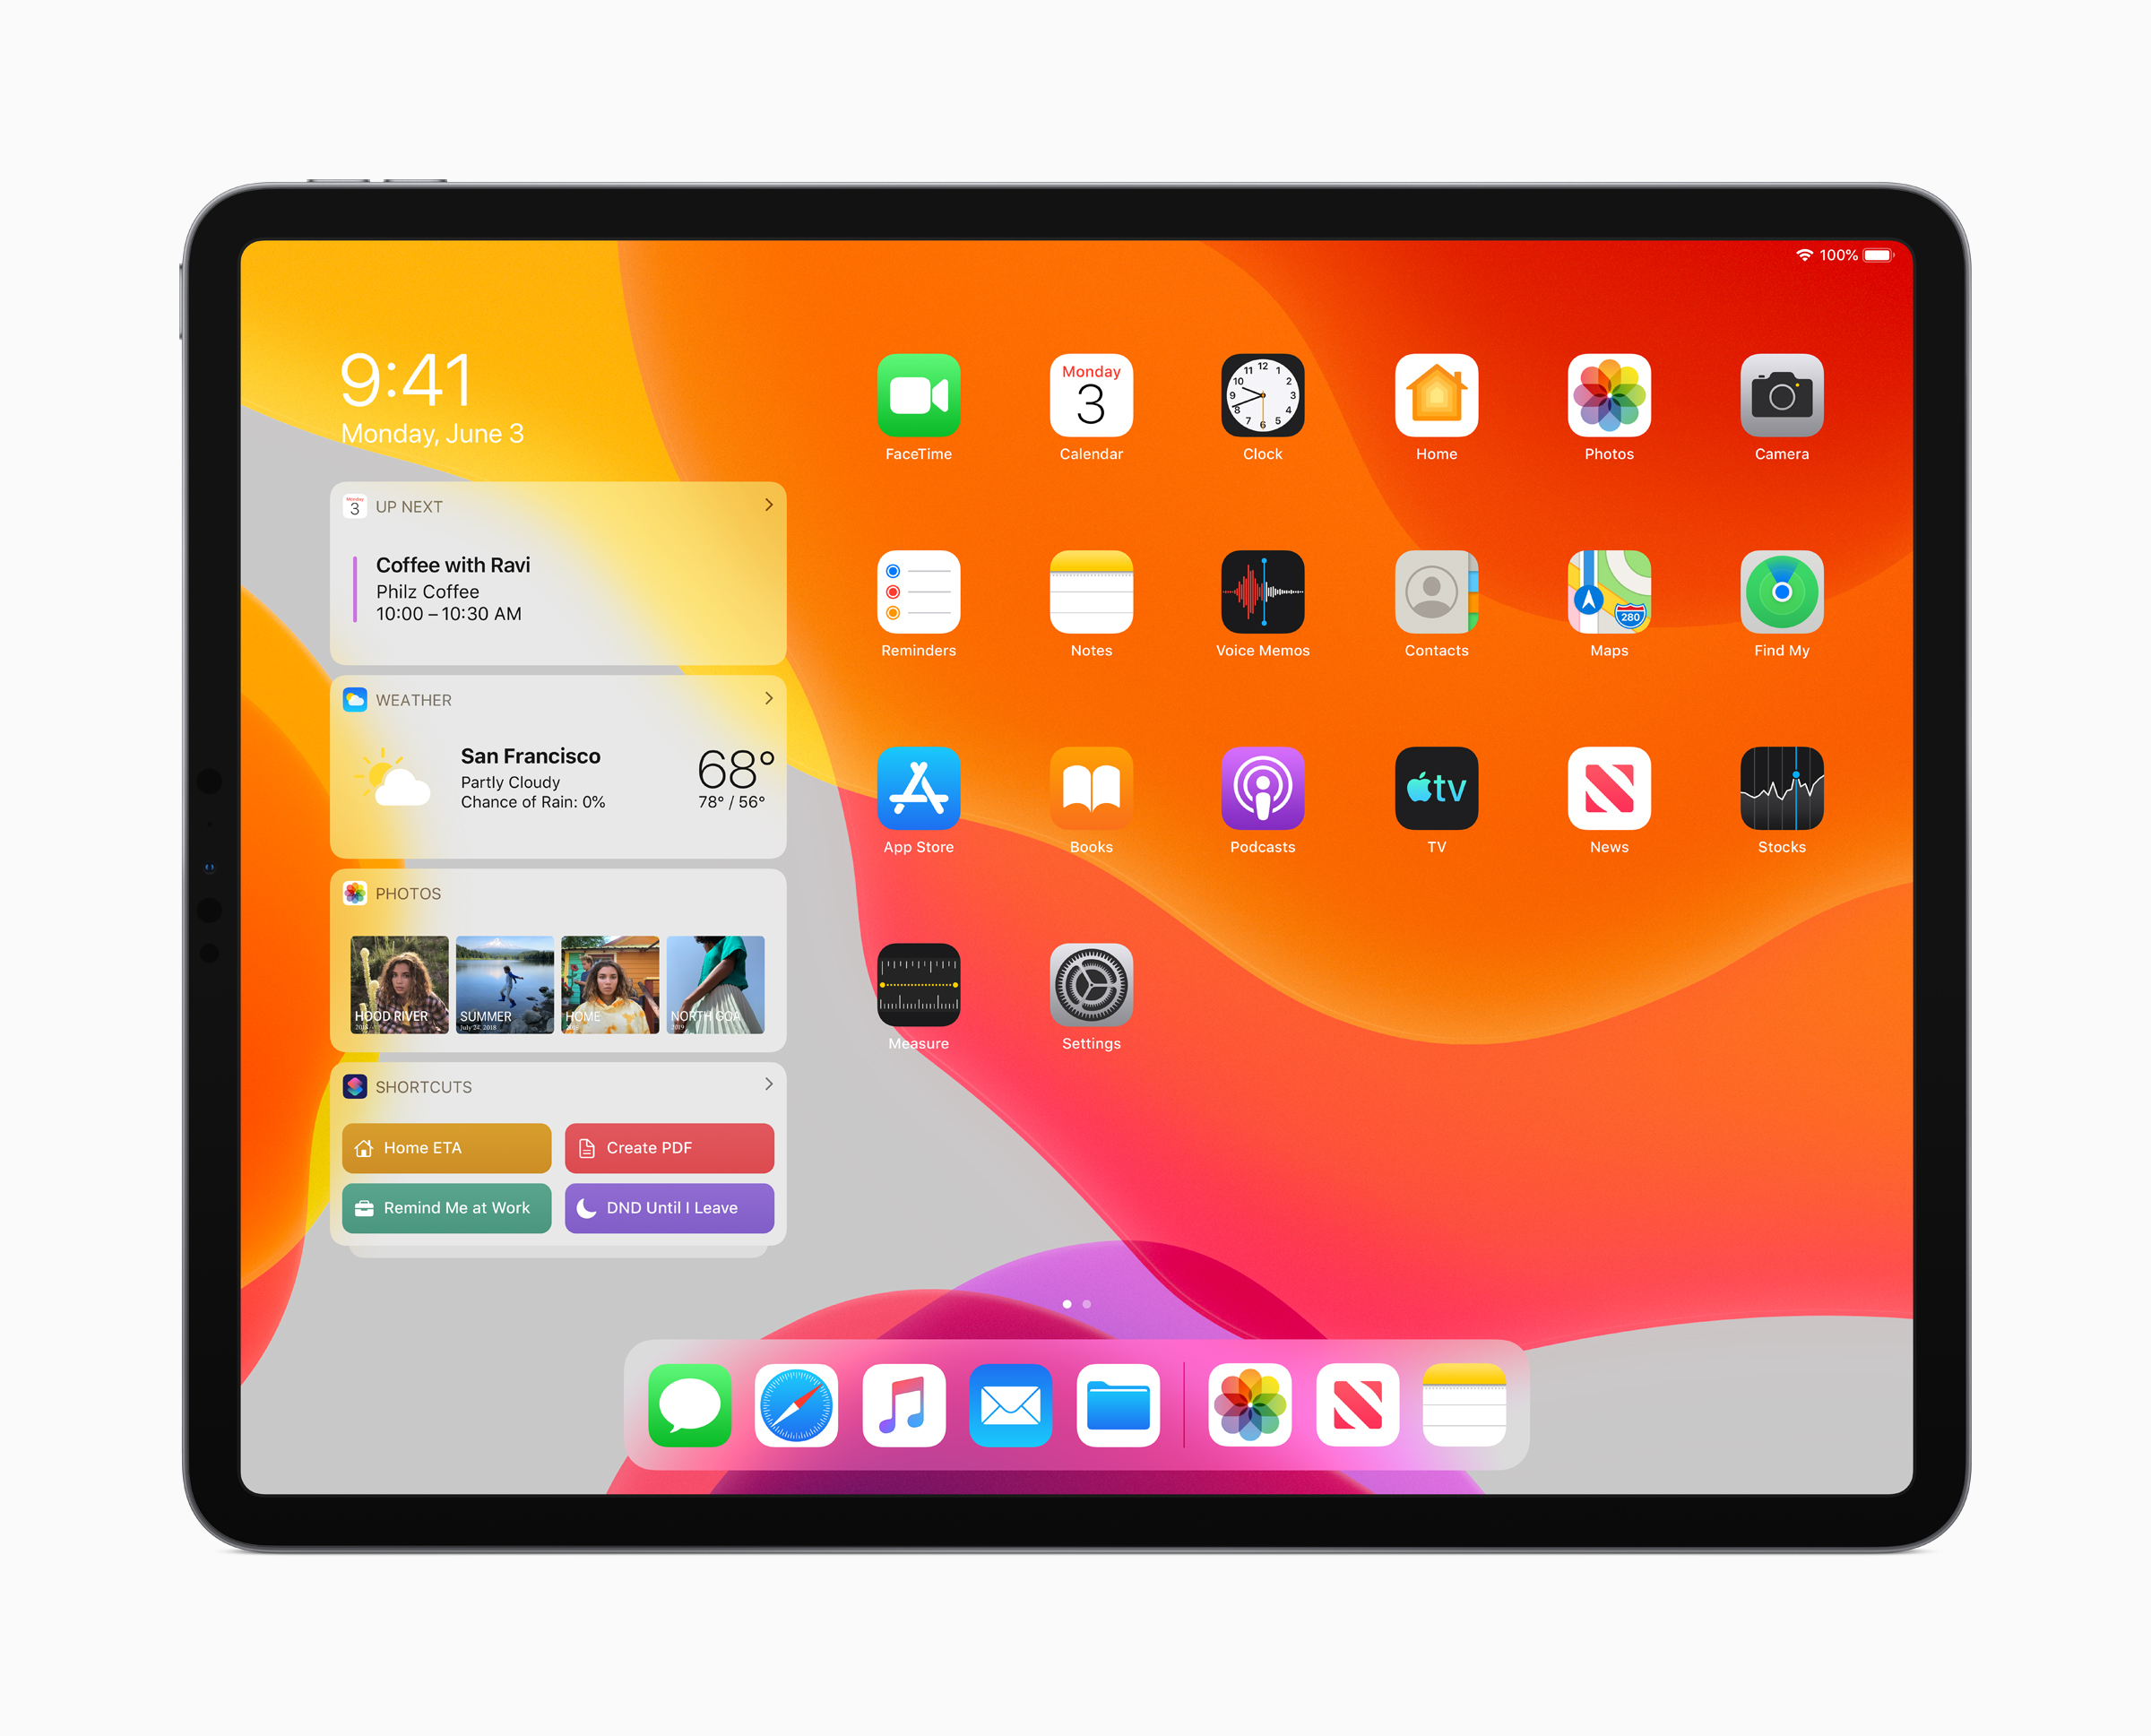 iPadOS home screen. Image courtesy of Apple.